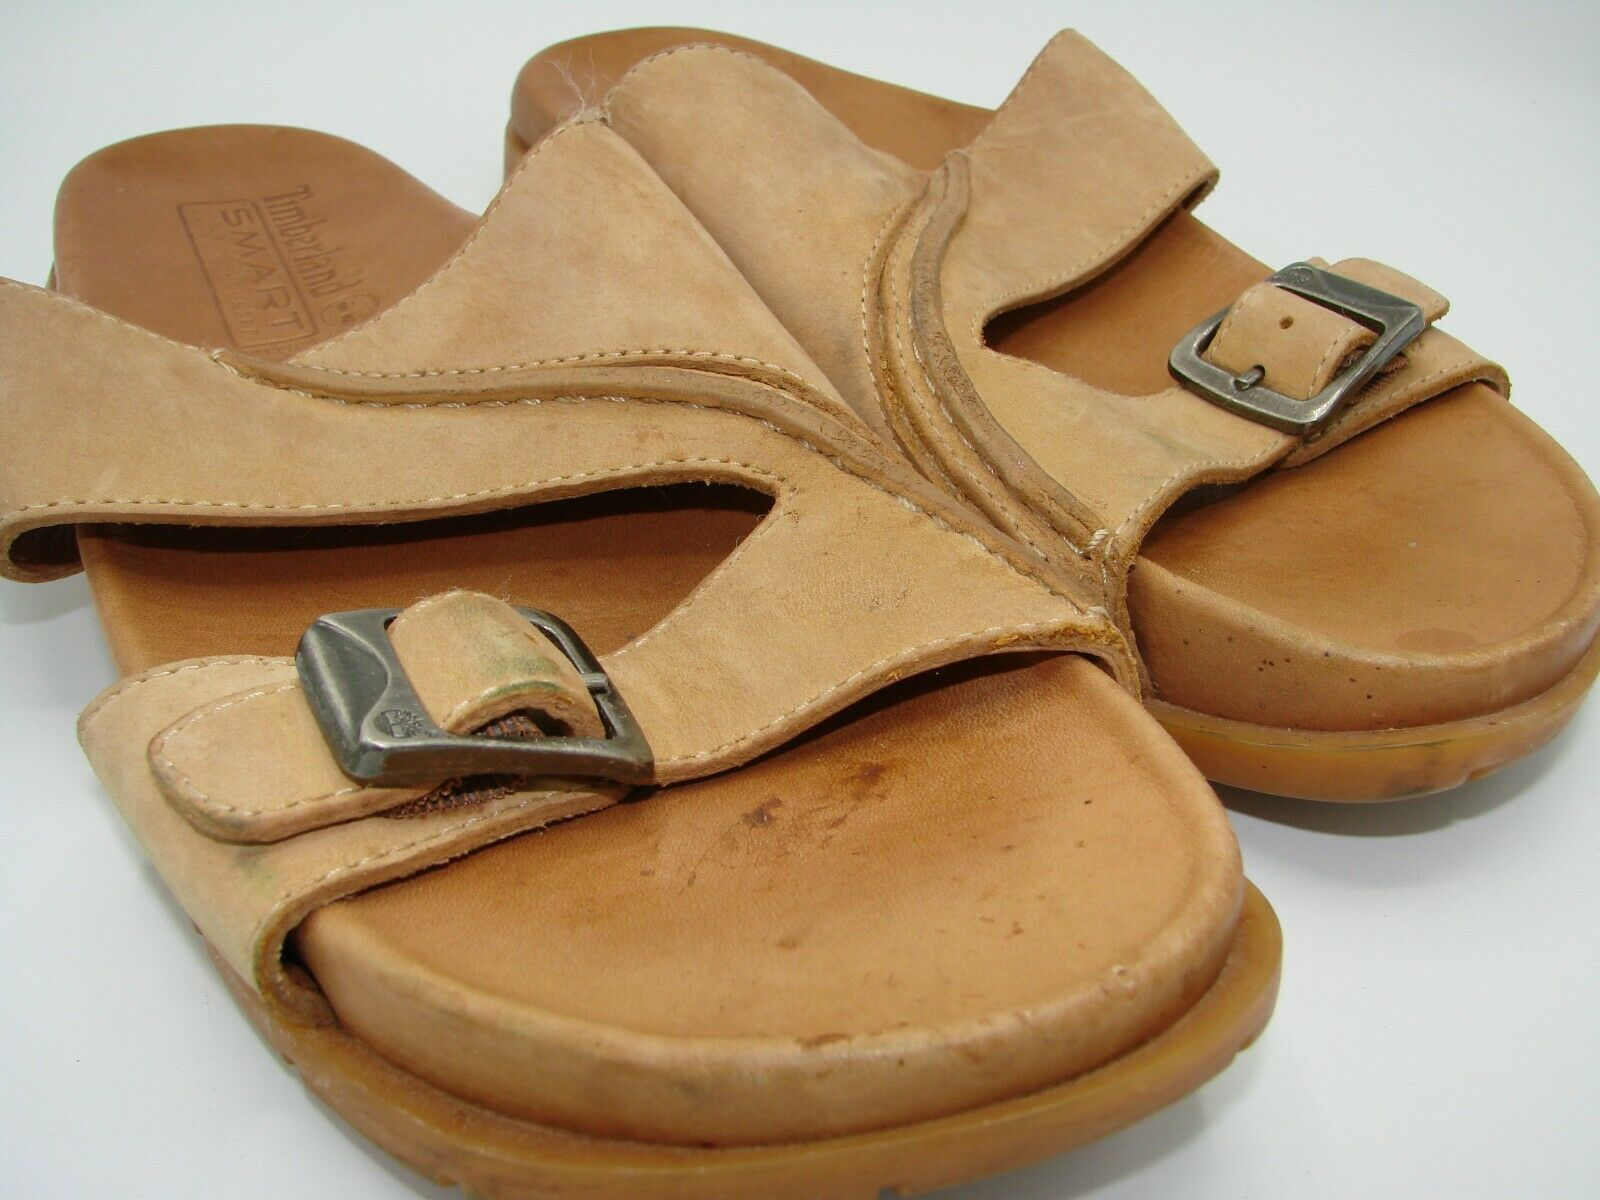 Primary image for Timberland Smart Comfort System Women's Leather Sandals Size 7M Tan